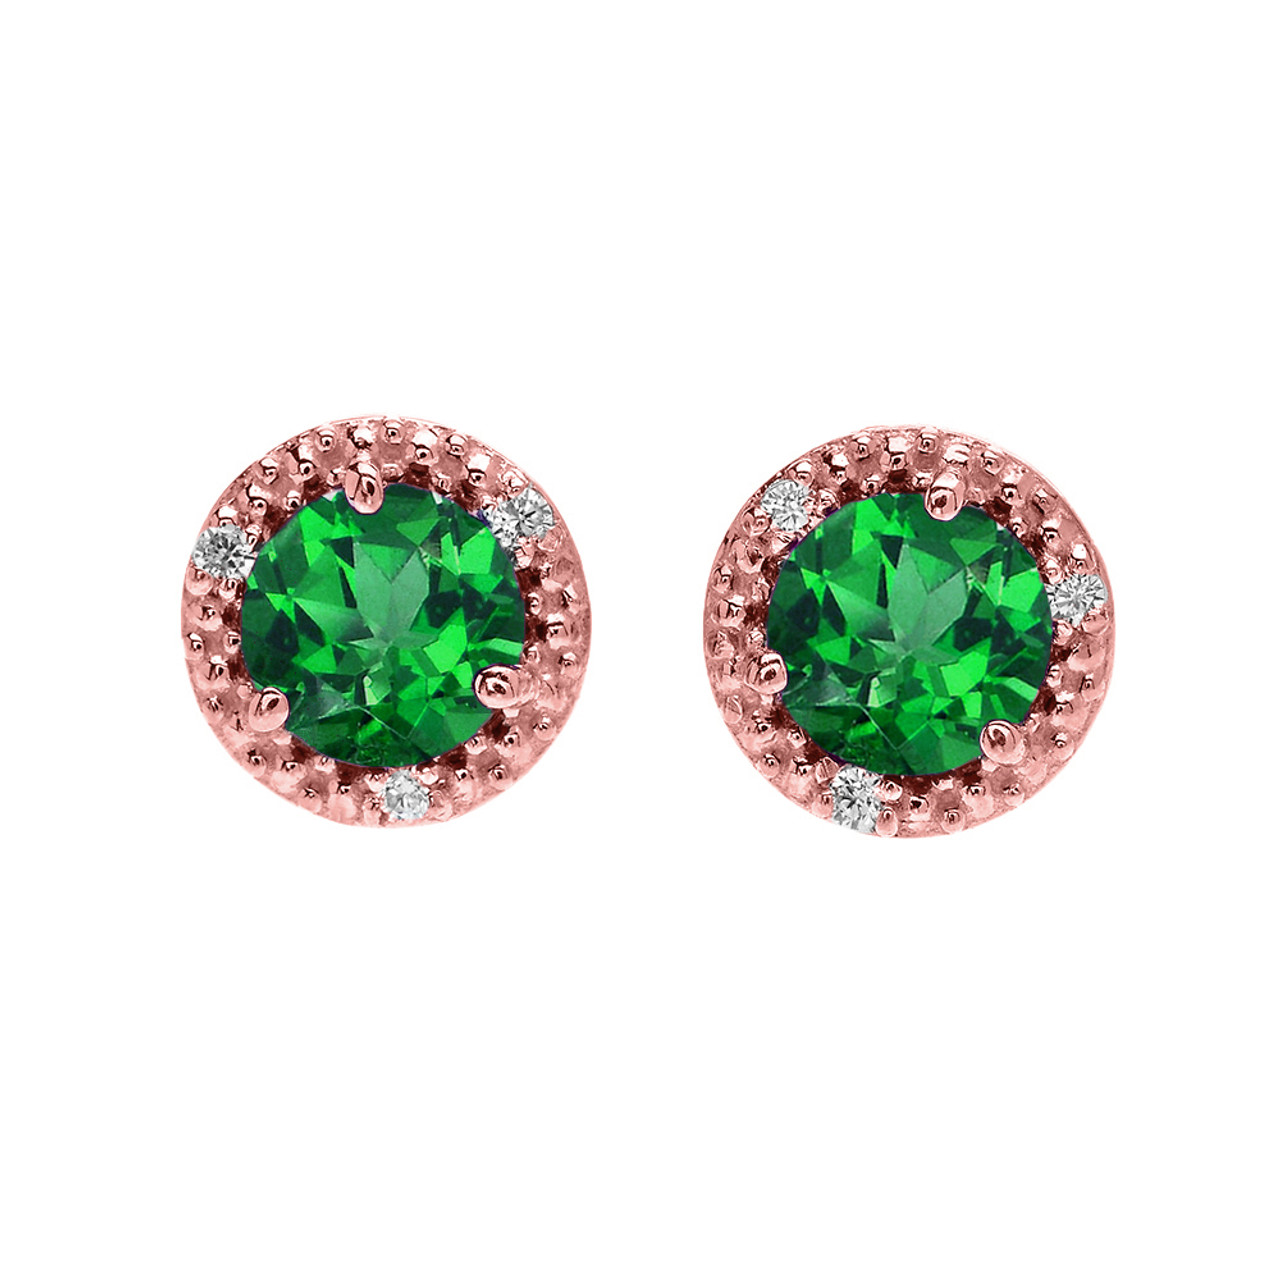 kate product earrings emerald ombre ombr wood jewellery